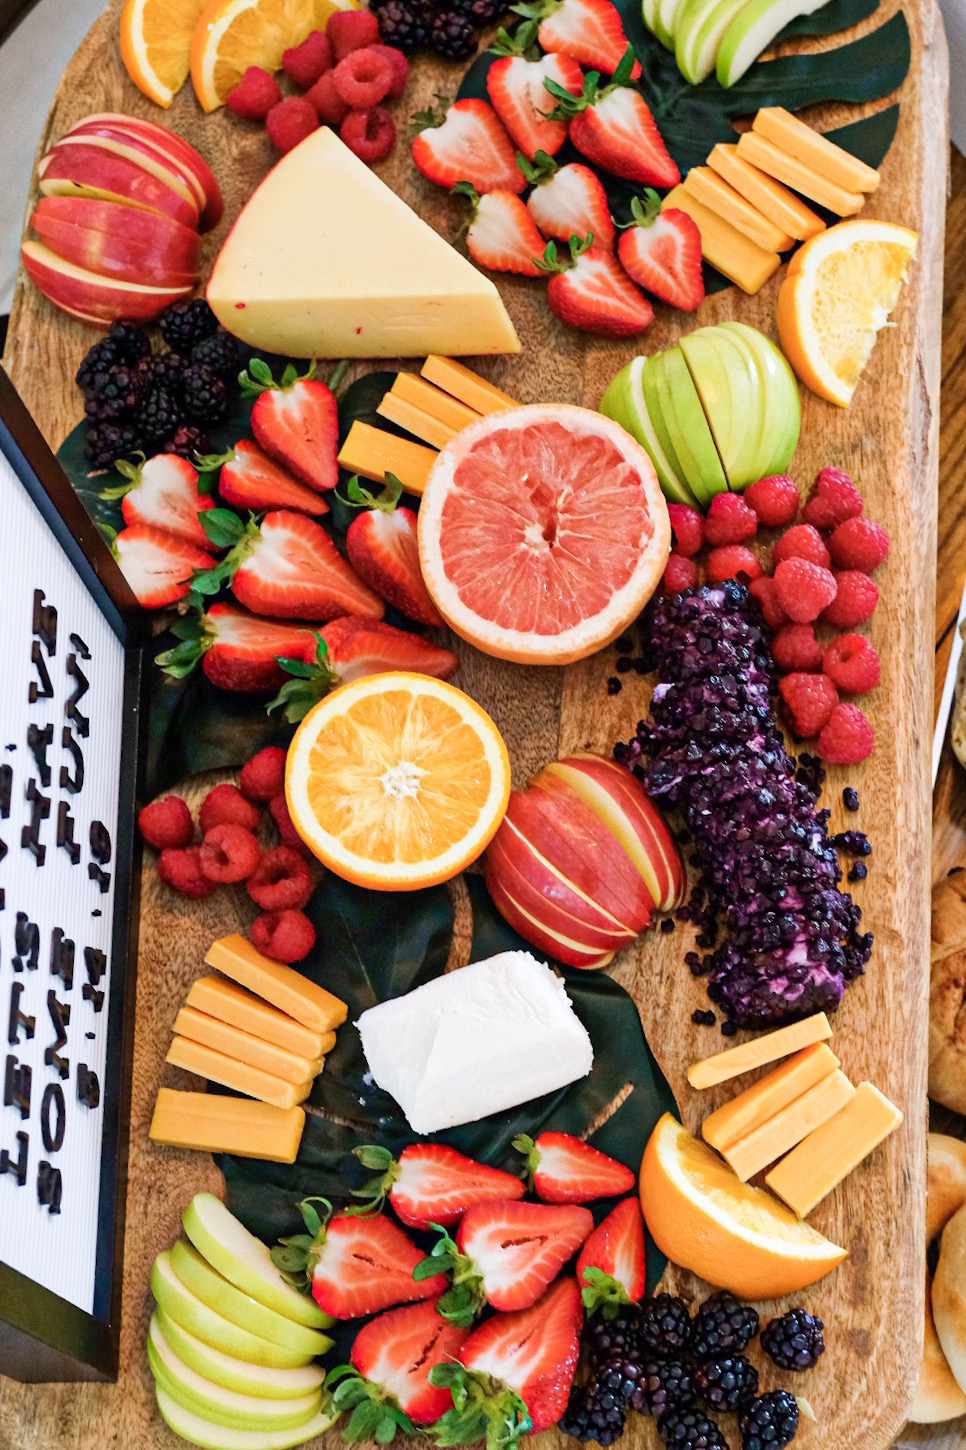 Brunch cheese board.  Fruit and cheese plate for a brunch birthday party.  Trader Joe's brunch cheese board.  Food for a brunch baby shower or baby birthday party.